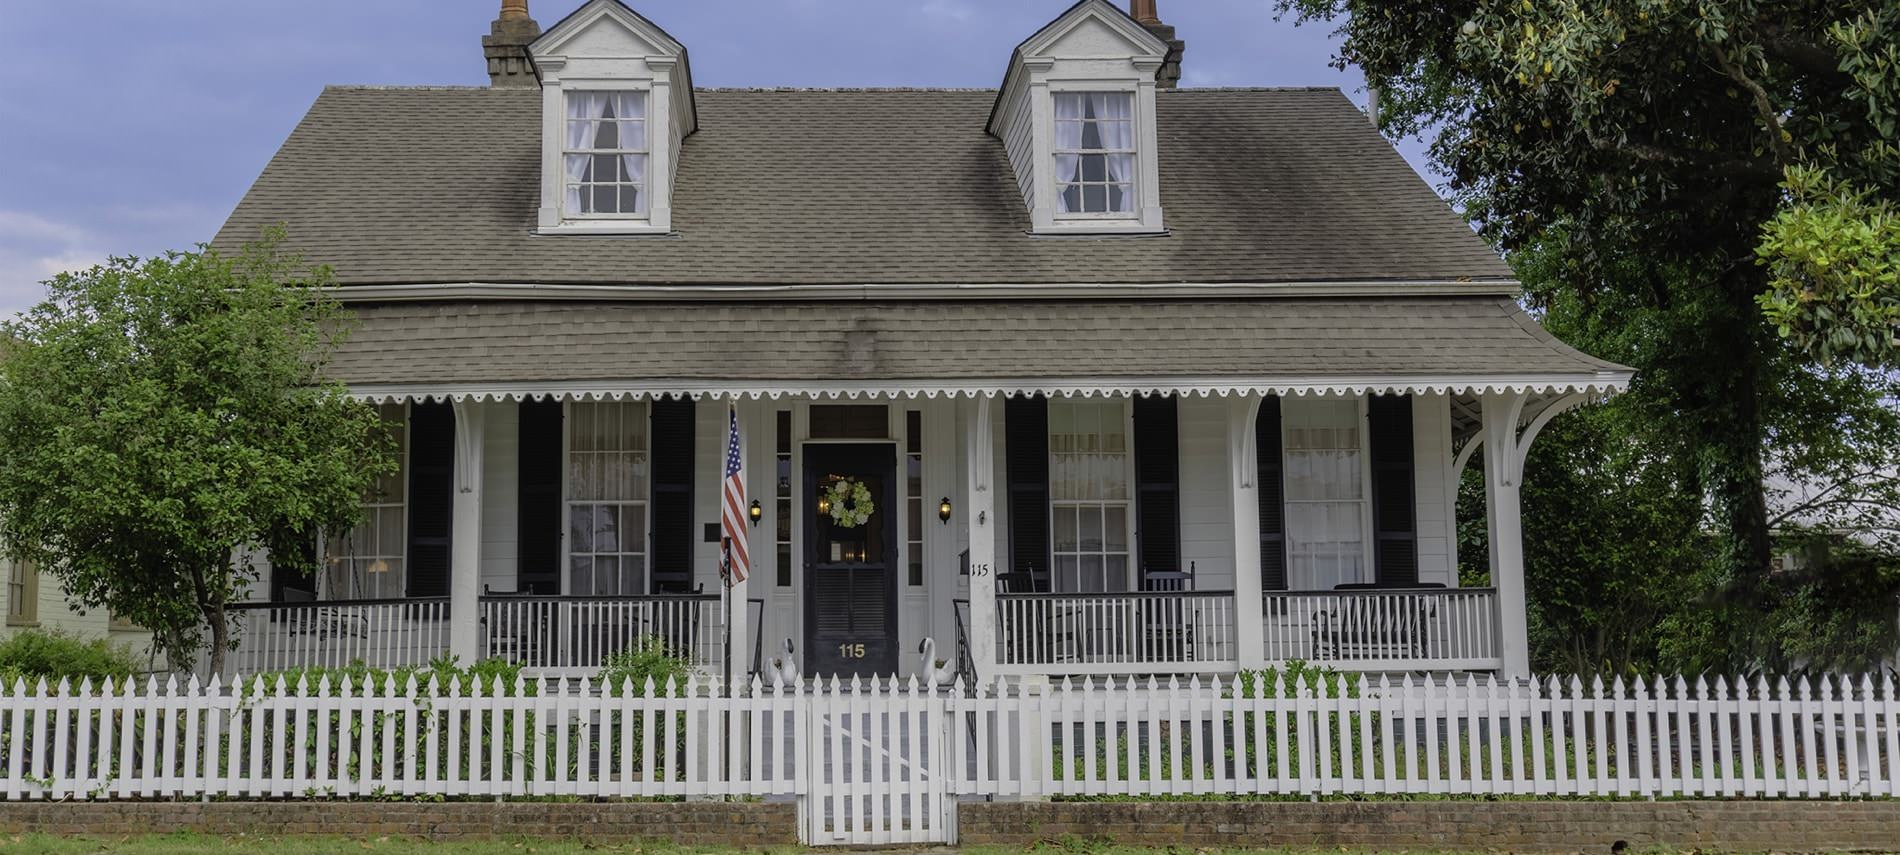 Front view of b&b with short, white fencing, white siding on house with black shuttered windows and front door, slanted roof with two windows, and trees surrounding house